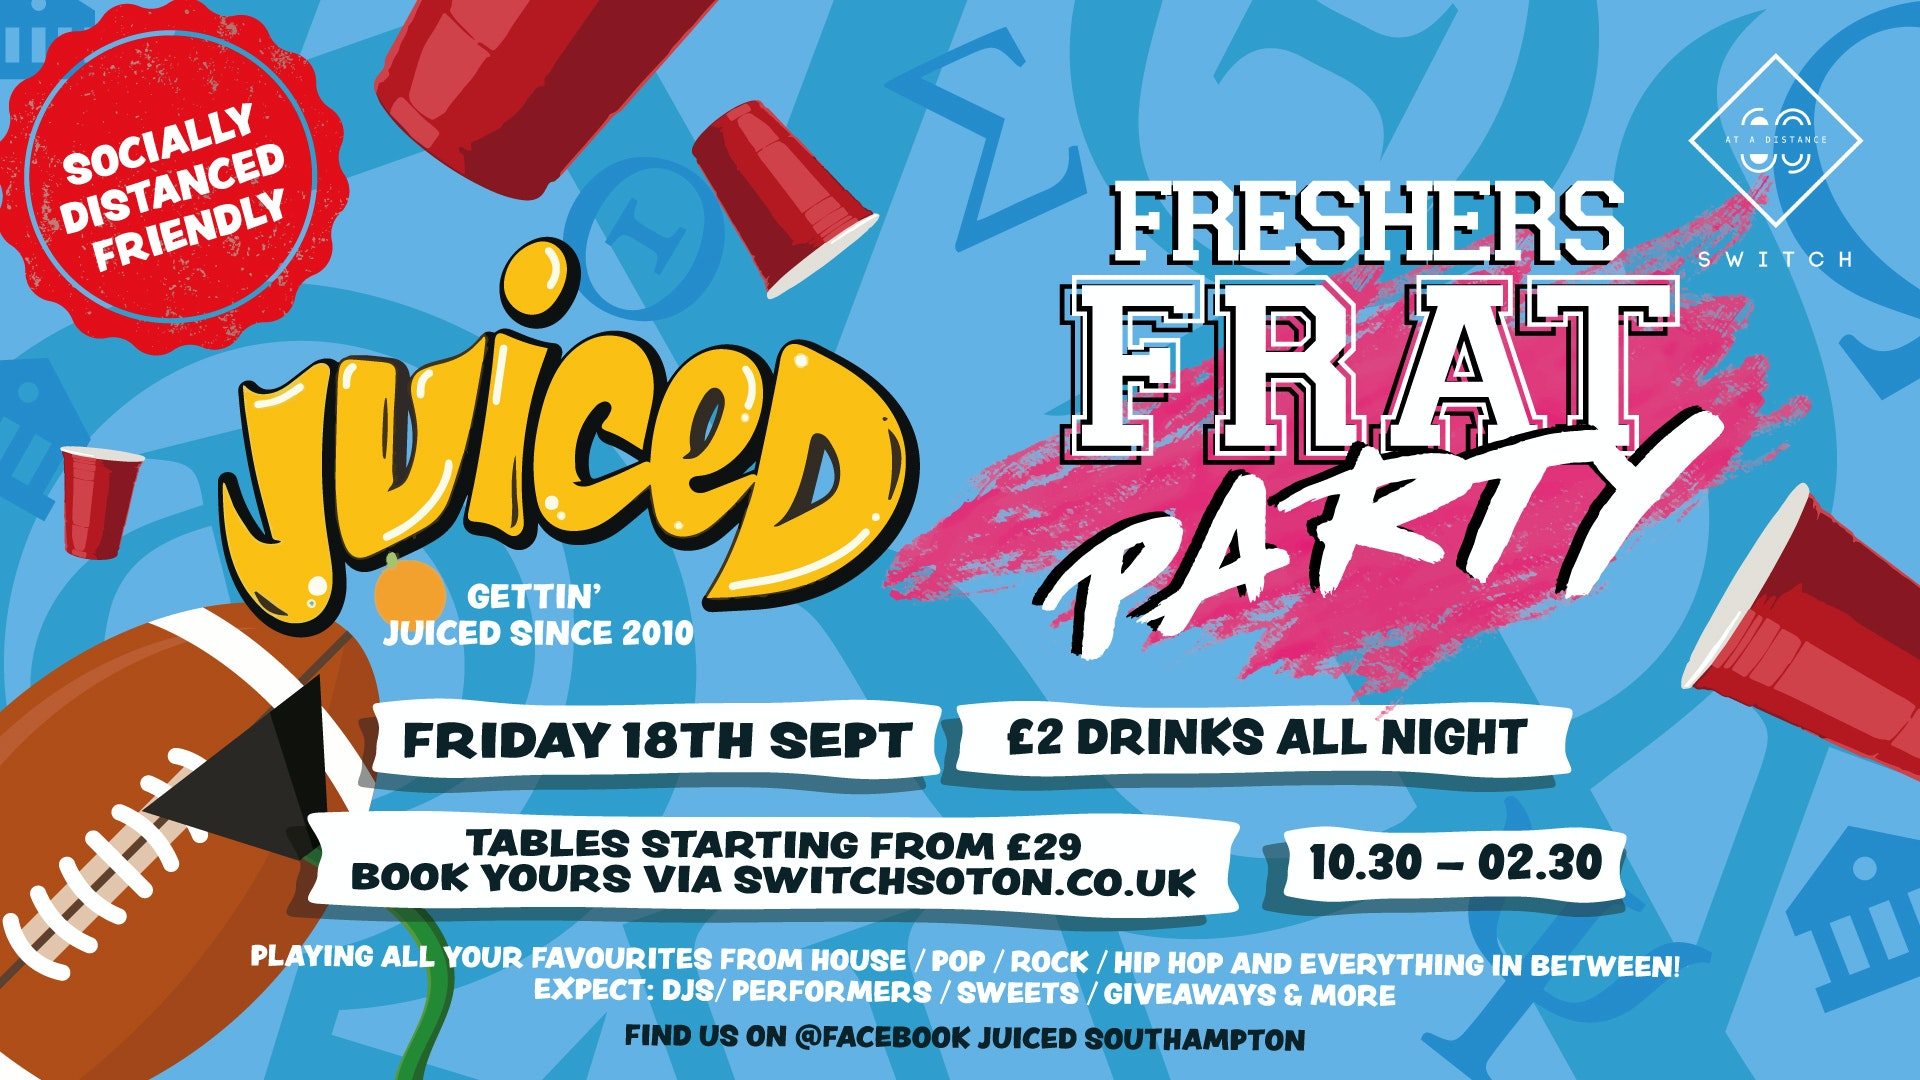 Juiced: Freshers Frat Party